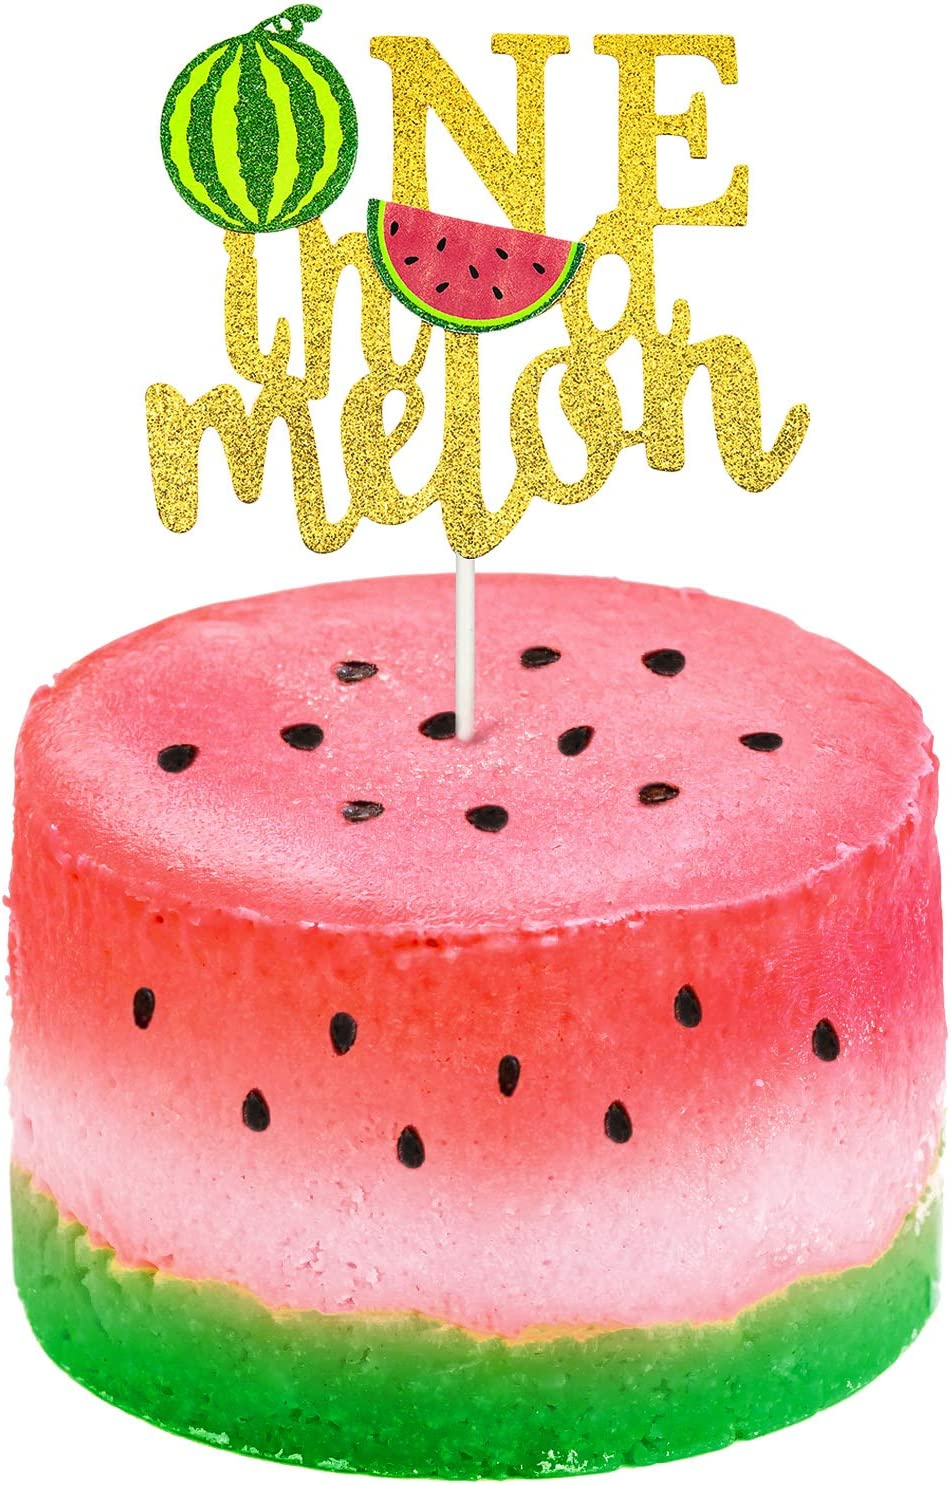 Amazon Com One In A Melon Cake Topper Glitter Watermelon Cupcake Topper 1st Birthday Party Cake Decor Watermelon Themed Kids Party Supplies Decorations For Baby Shower Girl S Birthday Toys Games